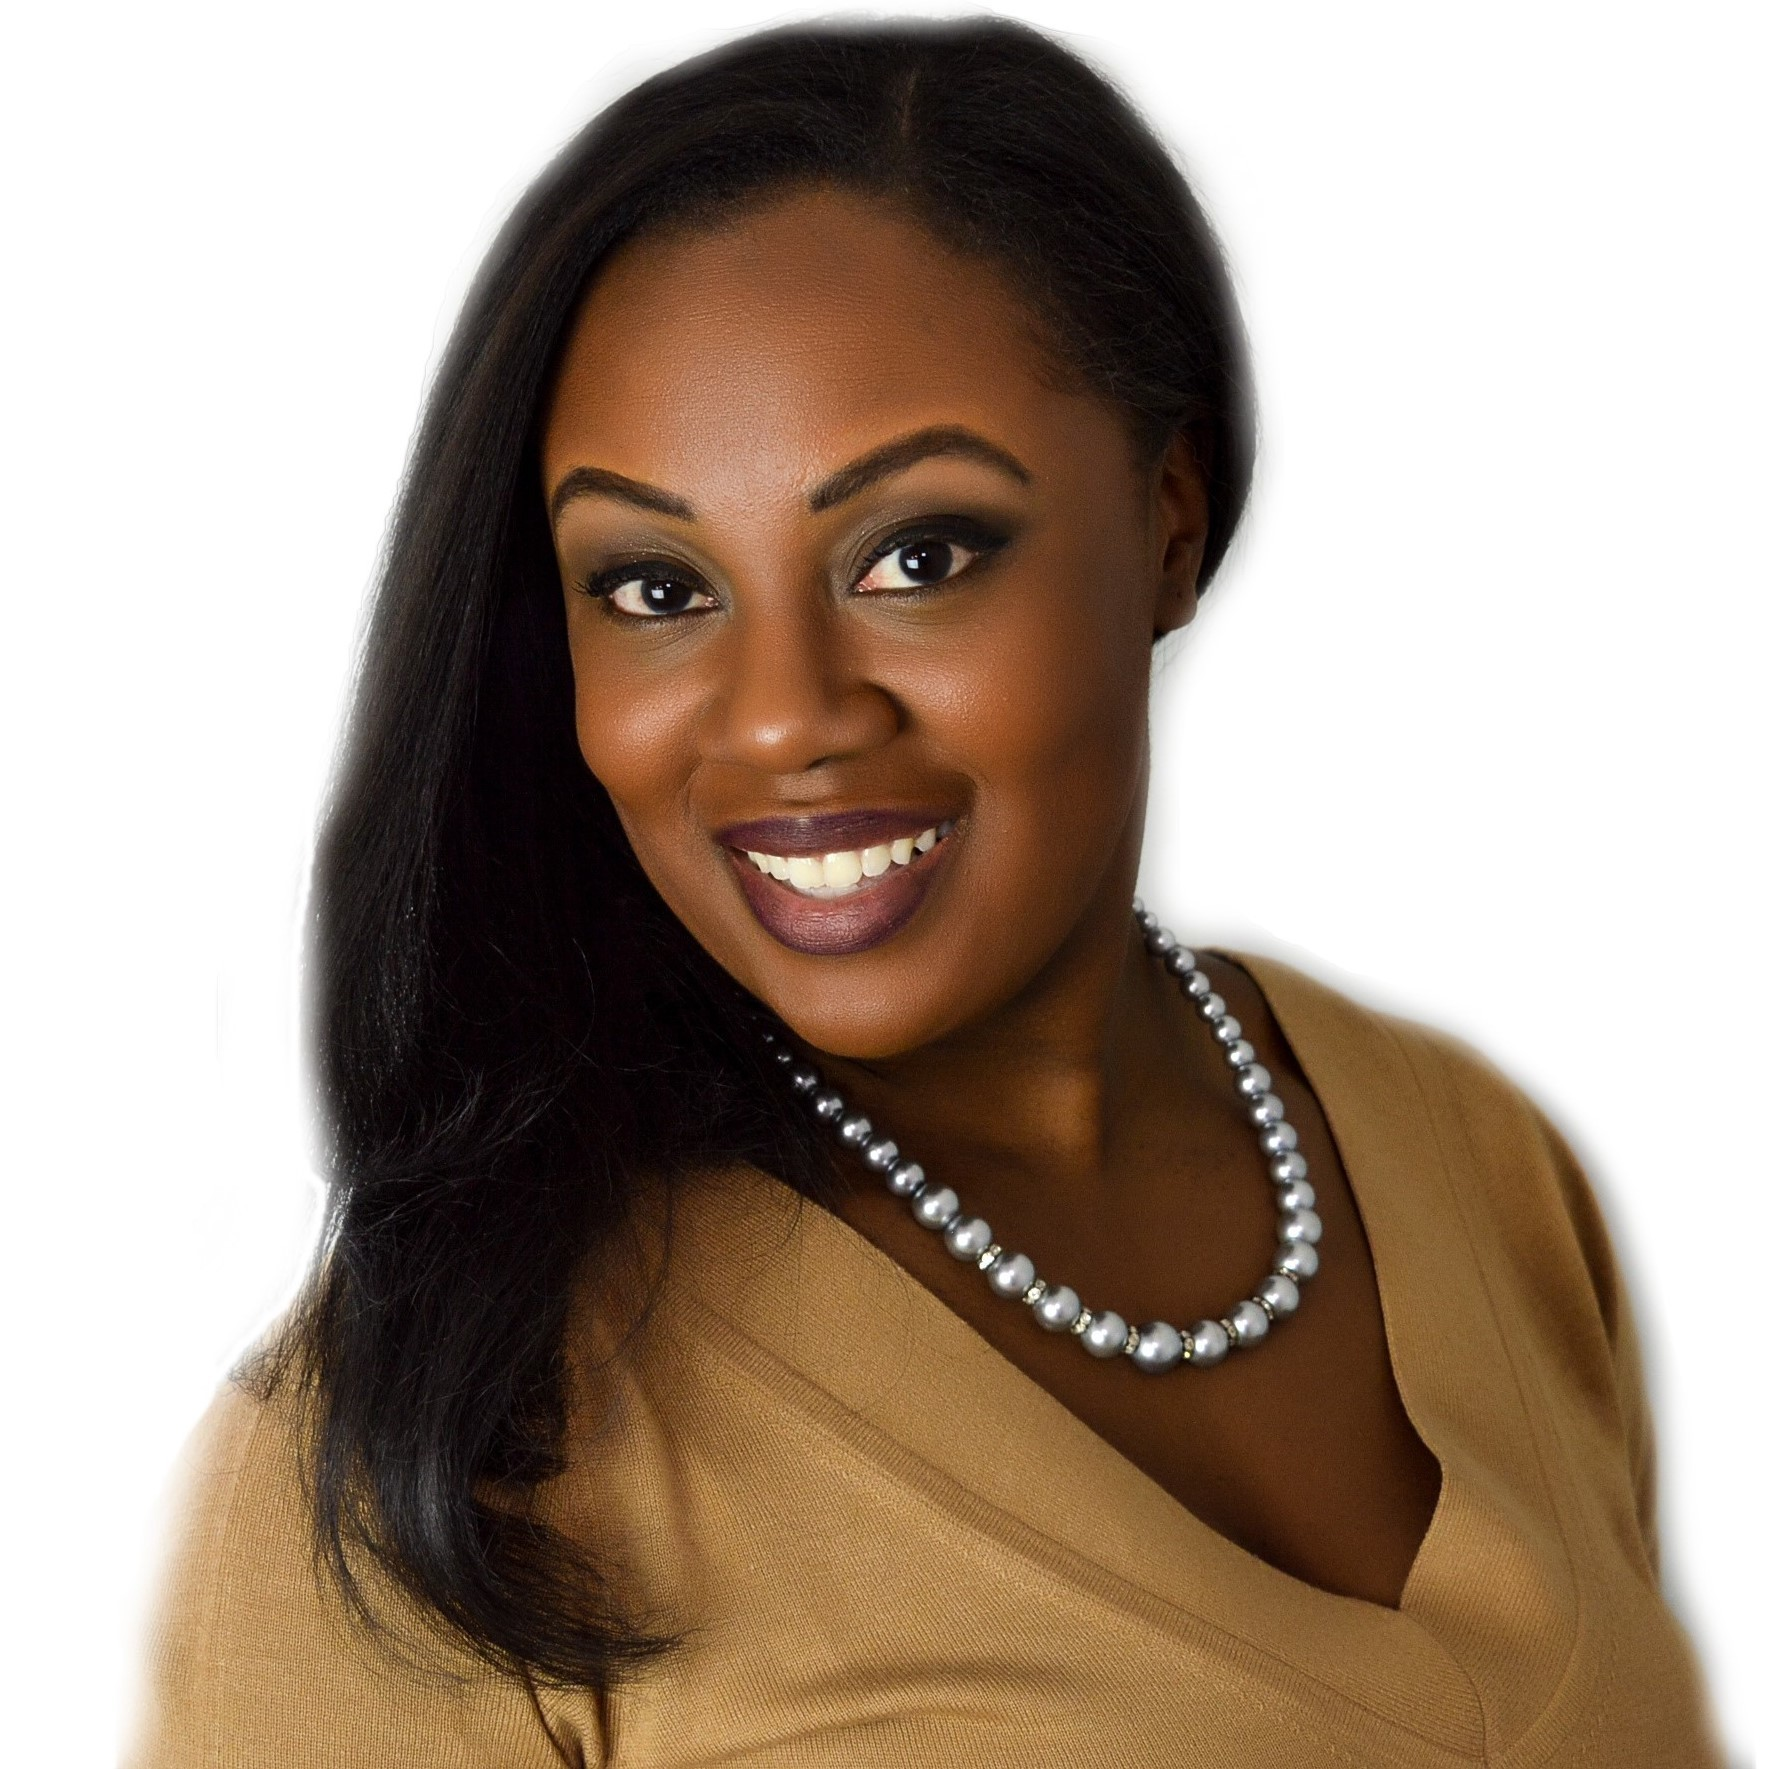 latisha-tish-styles-is-a-lifestyle-influencer-speaker-and-marketing-consultant-ep2262_thumbnail.png